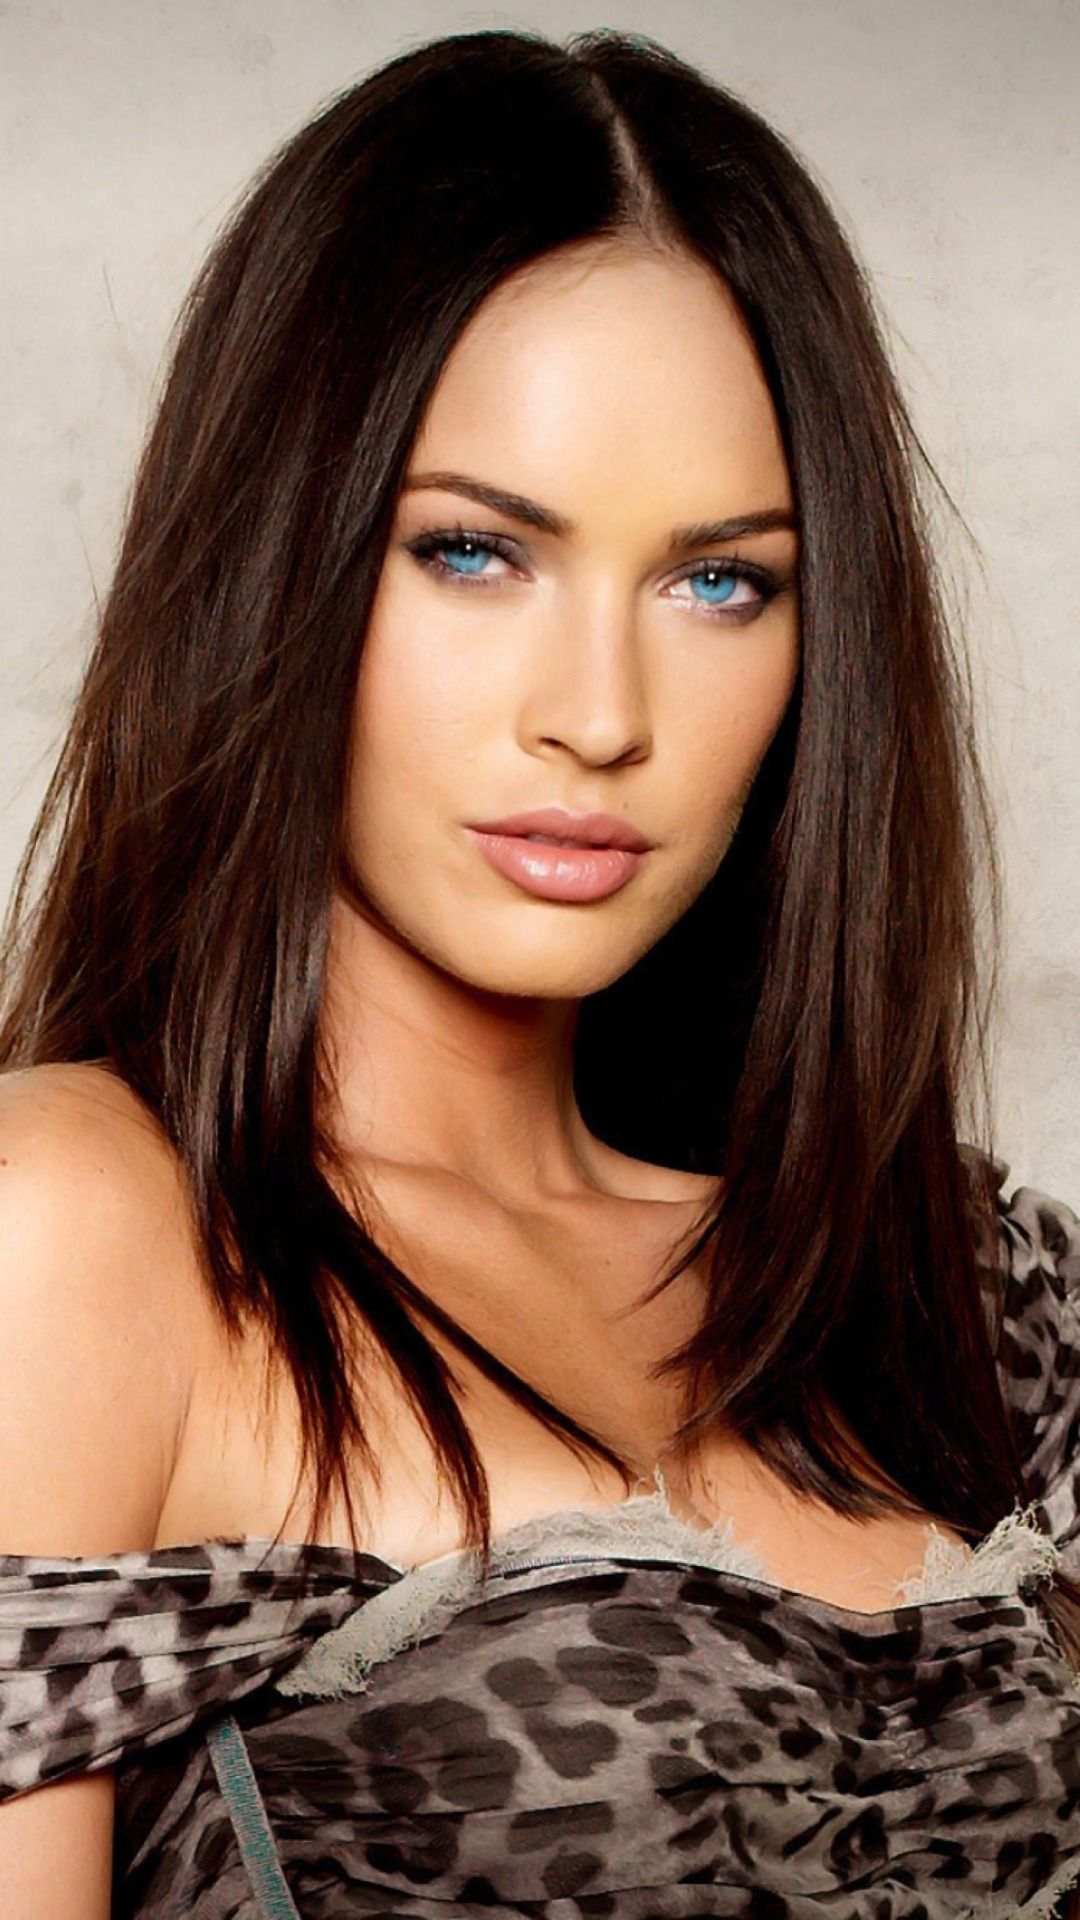 Megan fox megan fox pinterest foxes face and eye